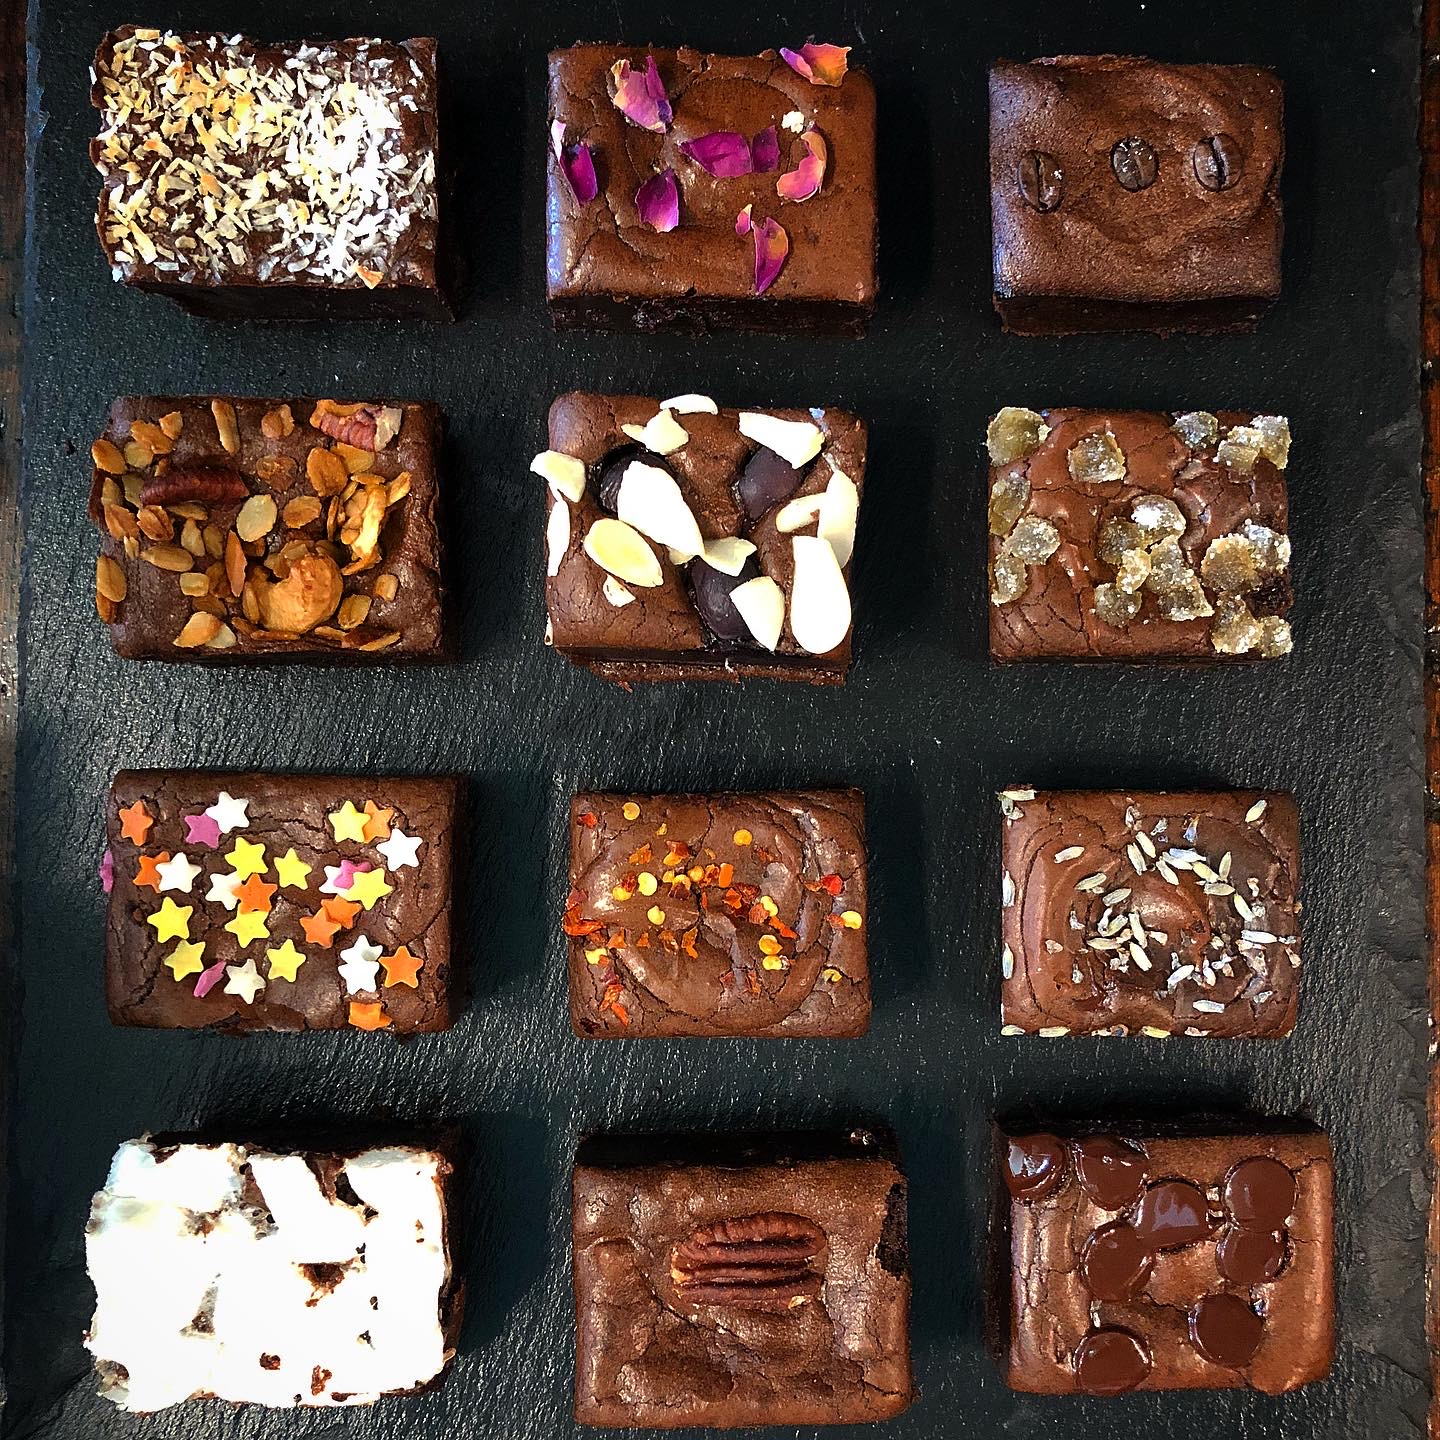 Mixed brownie box (12 pieces)